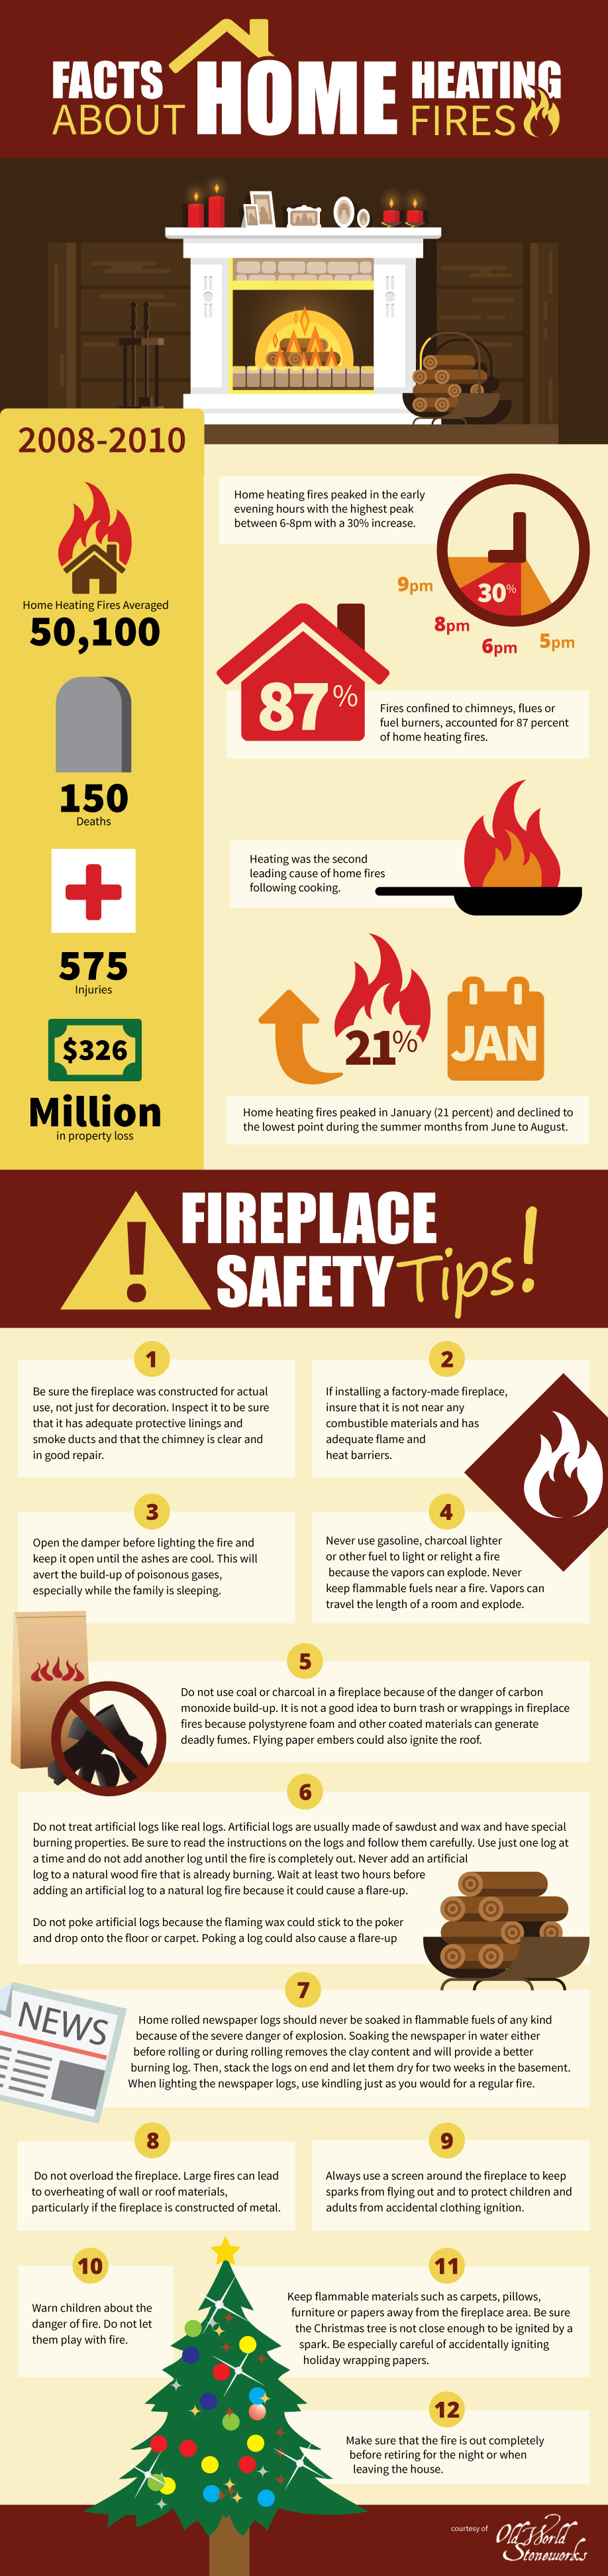 Fire Place Safety.jpg